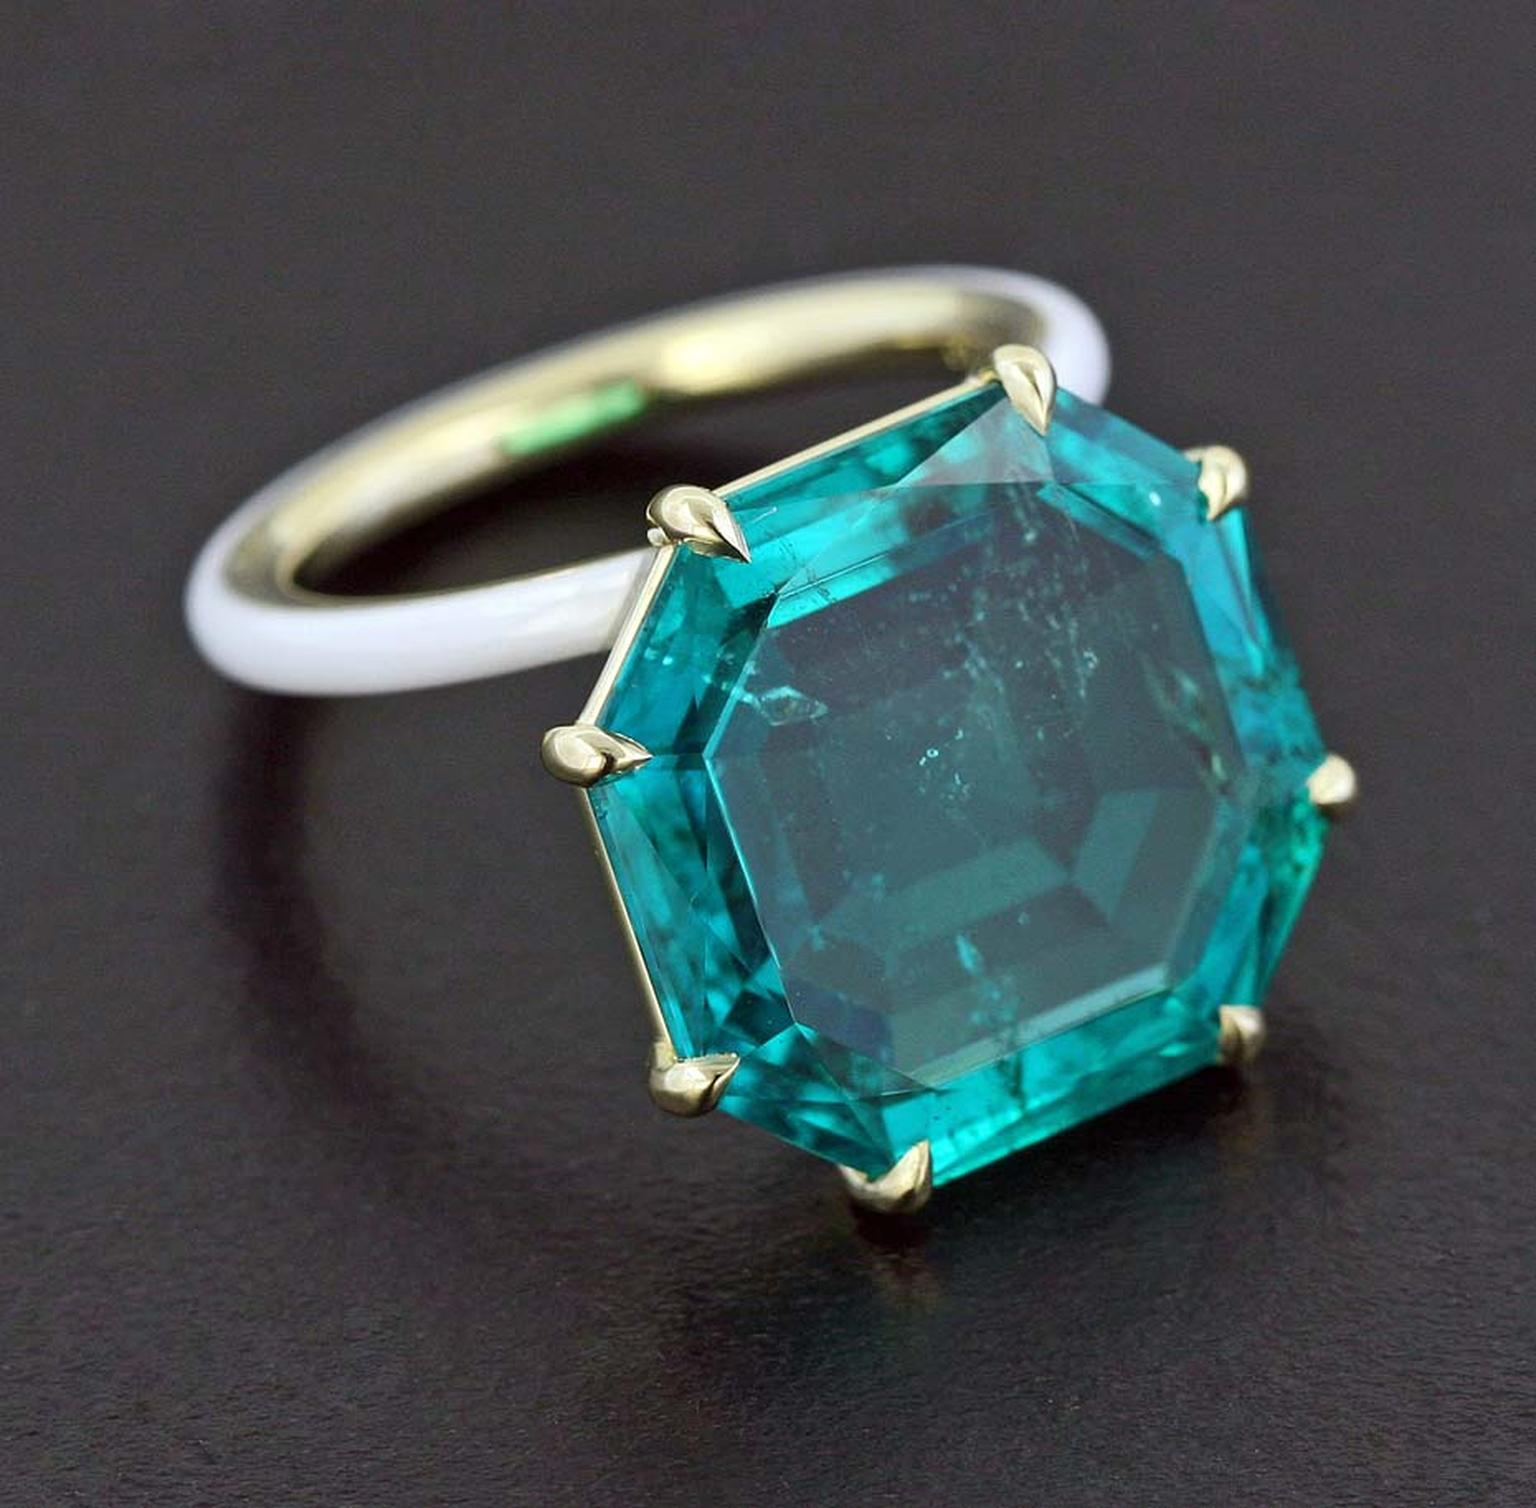 James de Givenchy Taffin emerald, white ceramic and yellow gold ring.